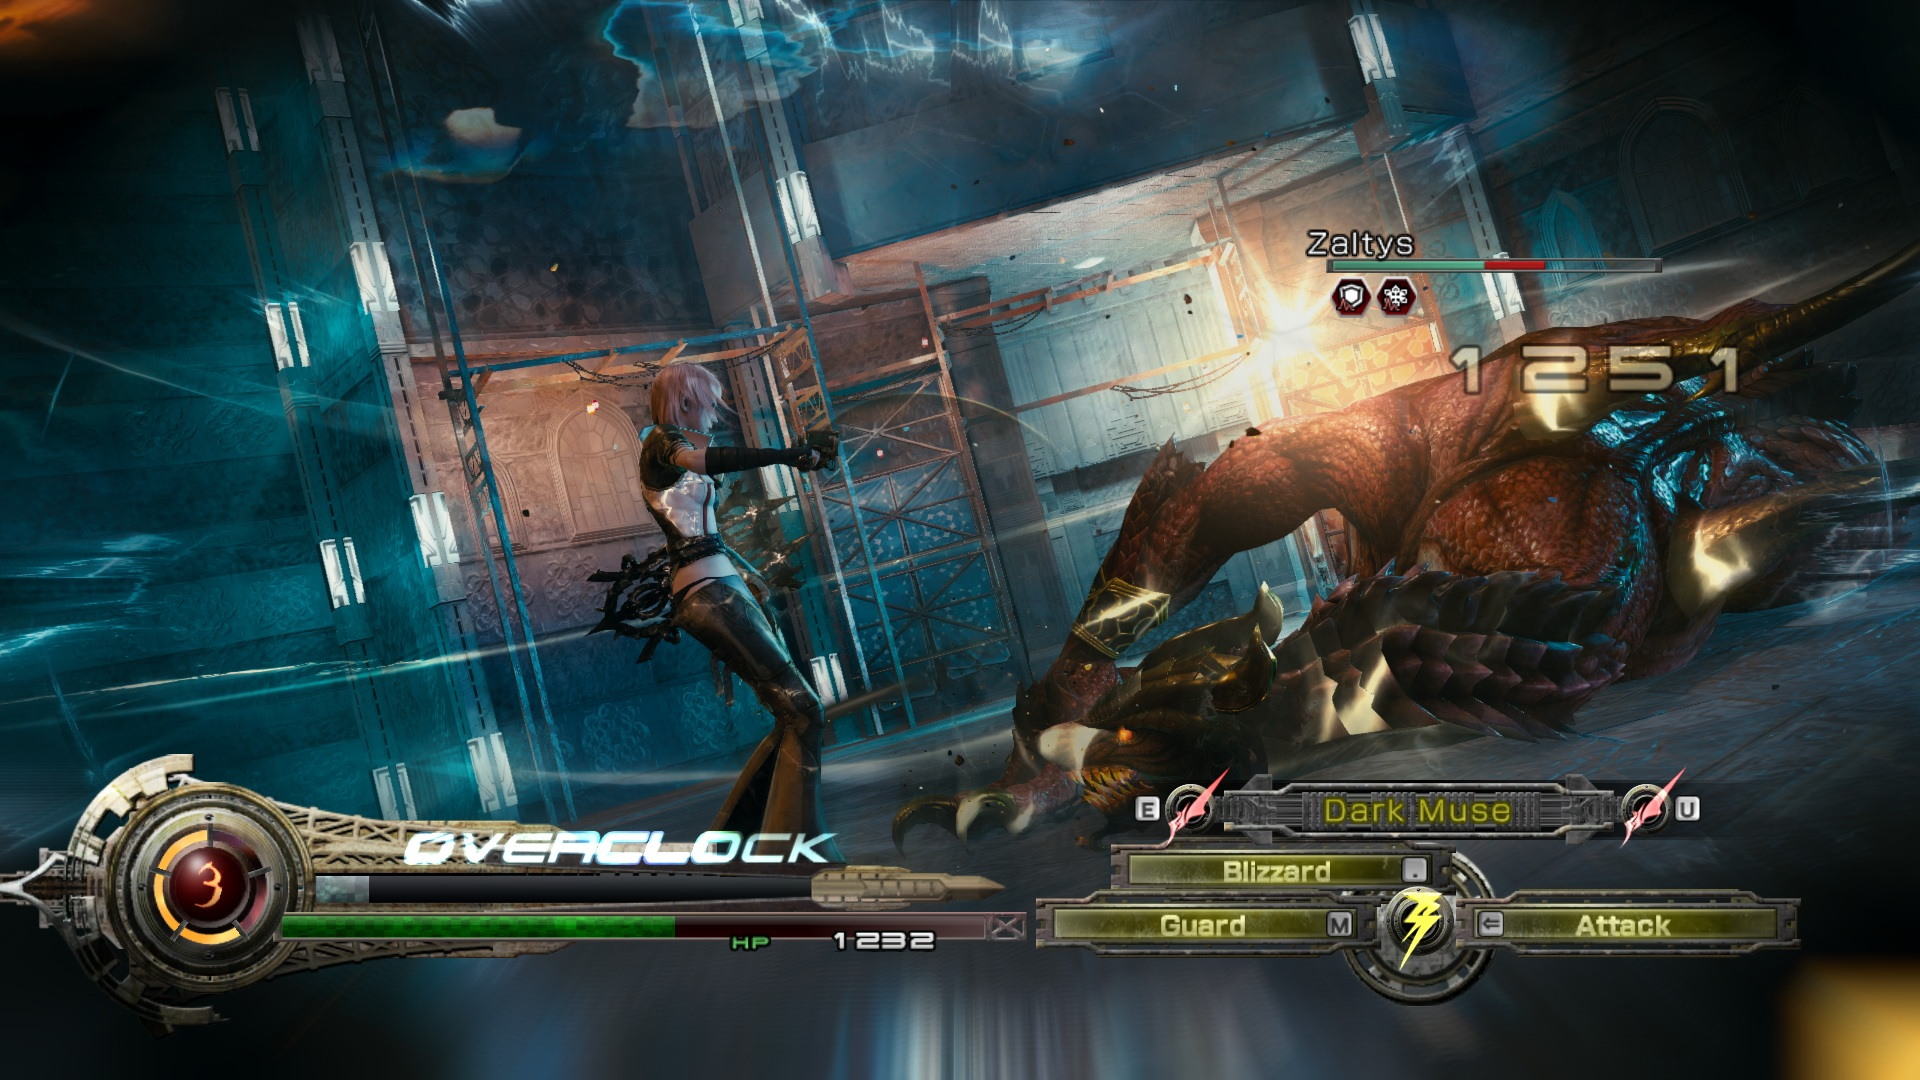 Lightning Returns: Final Fantasy XIII - PC Performance Analysis